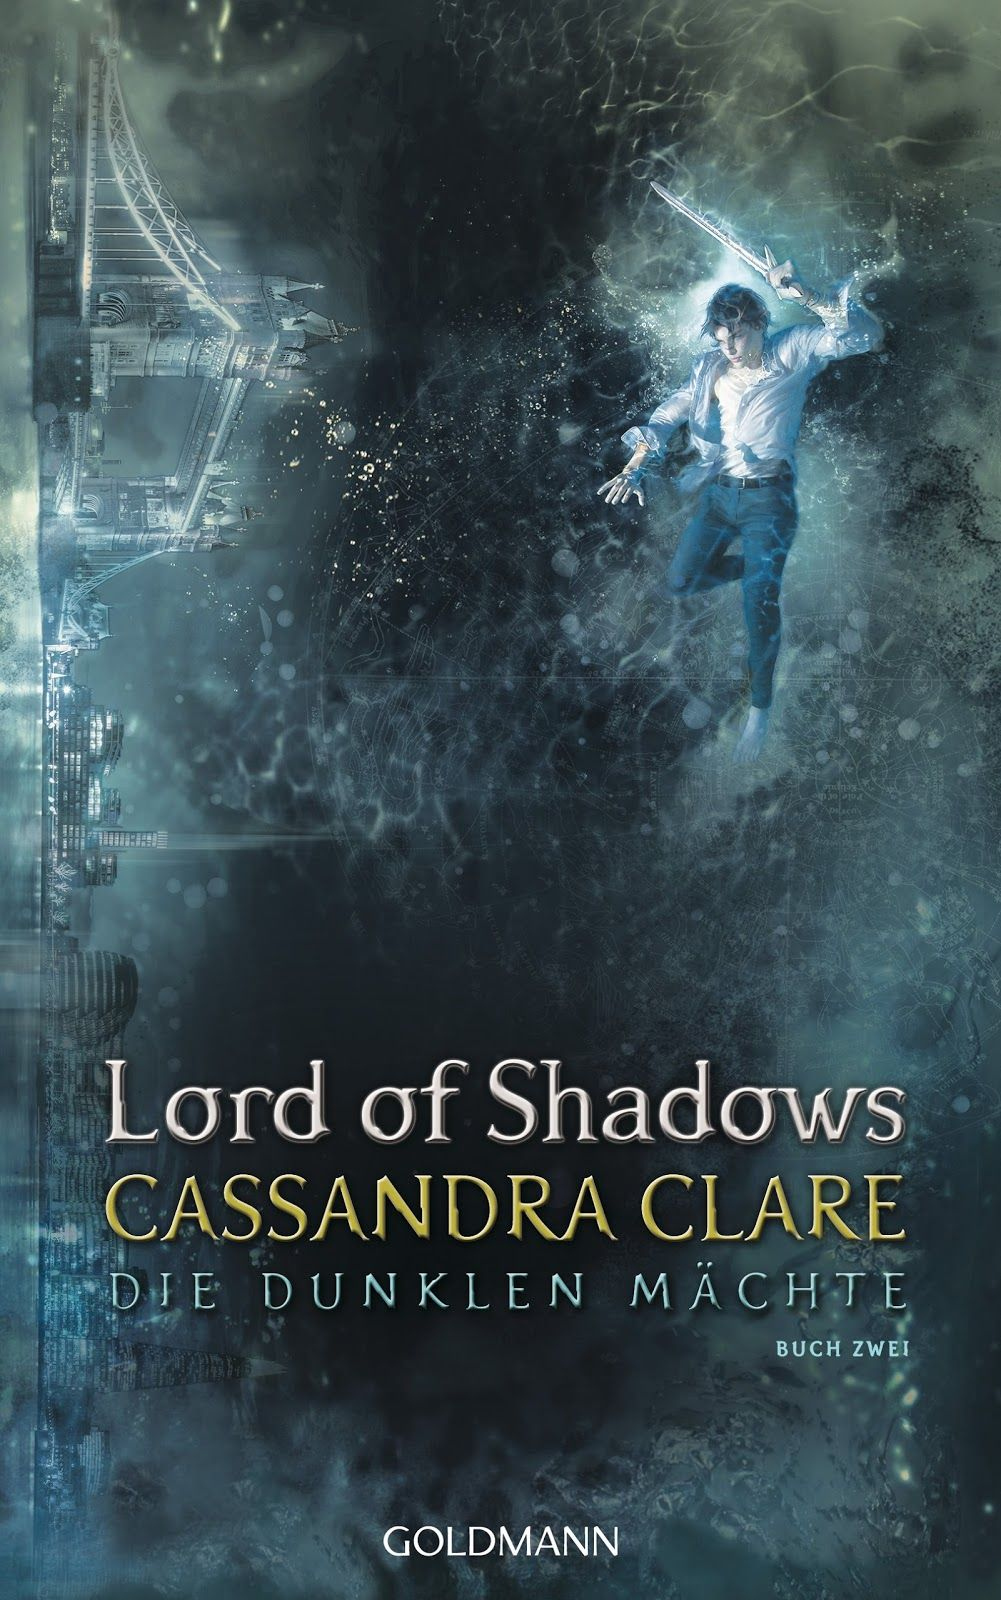 Audiobook Lord Of Shadows The Dark Artifices 2 By Cassandra